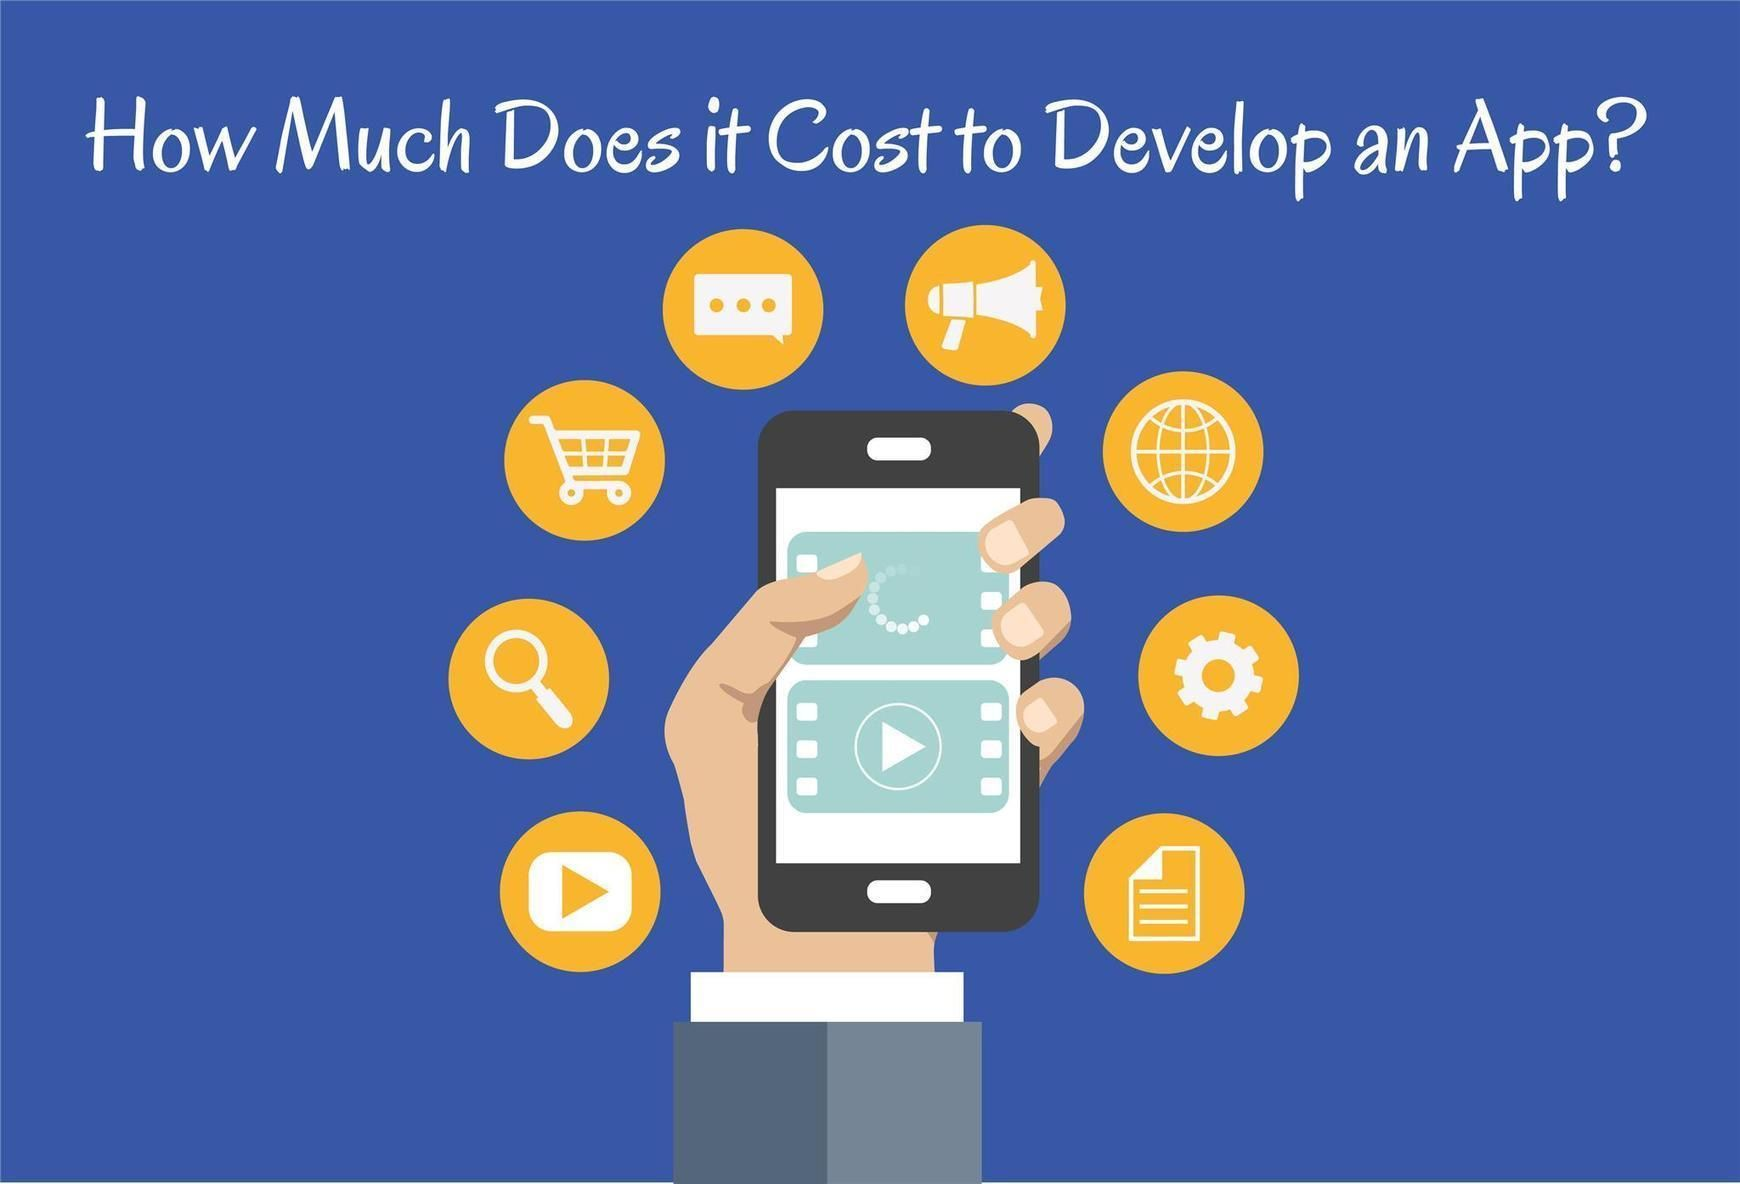 How Much Does it Cost to Develop an App? App